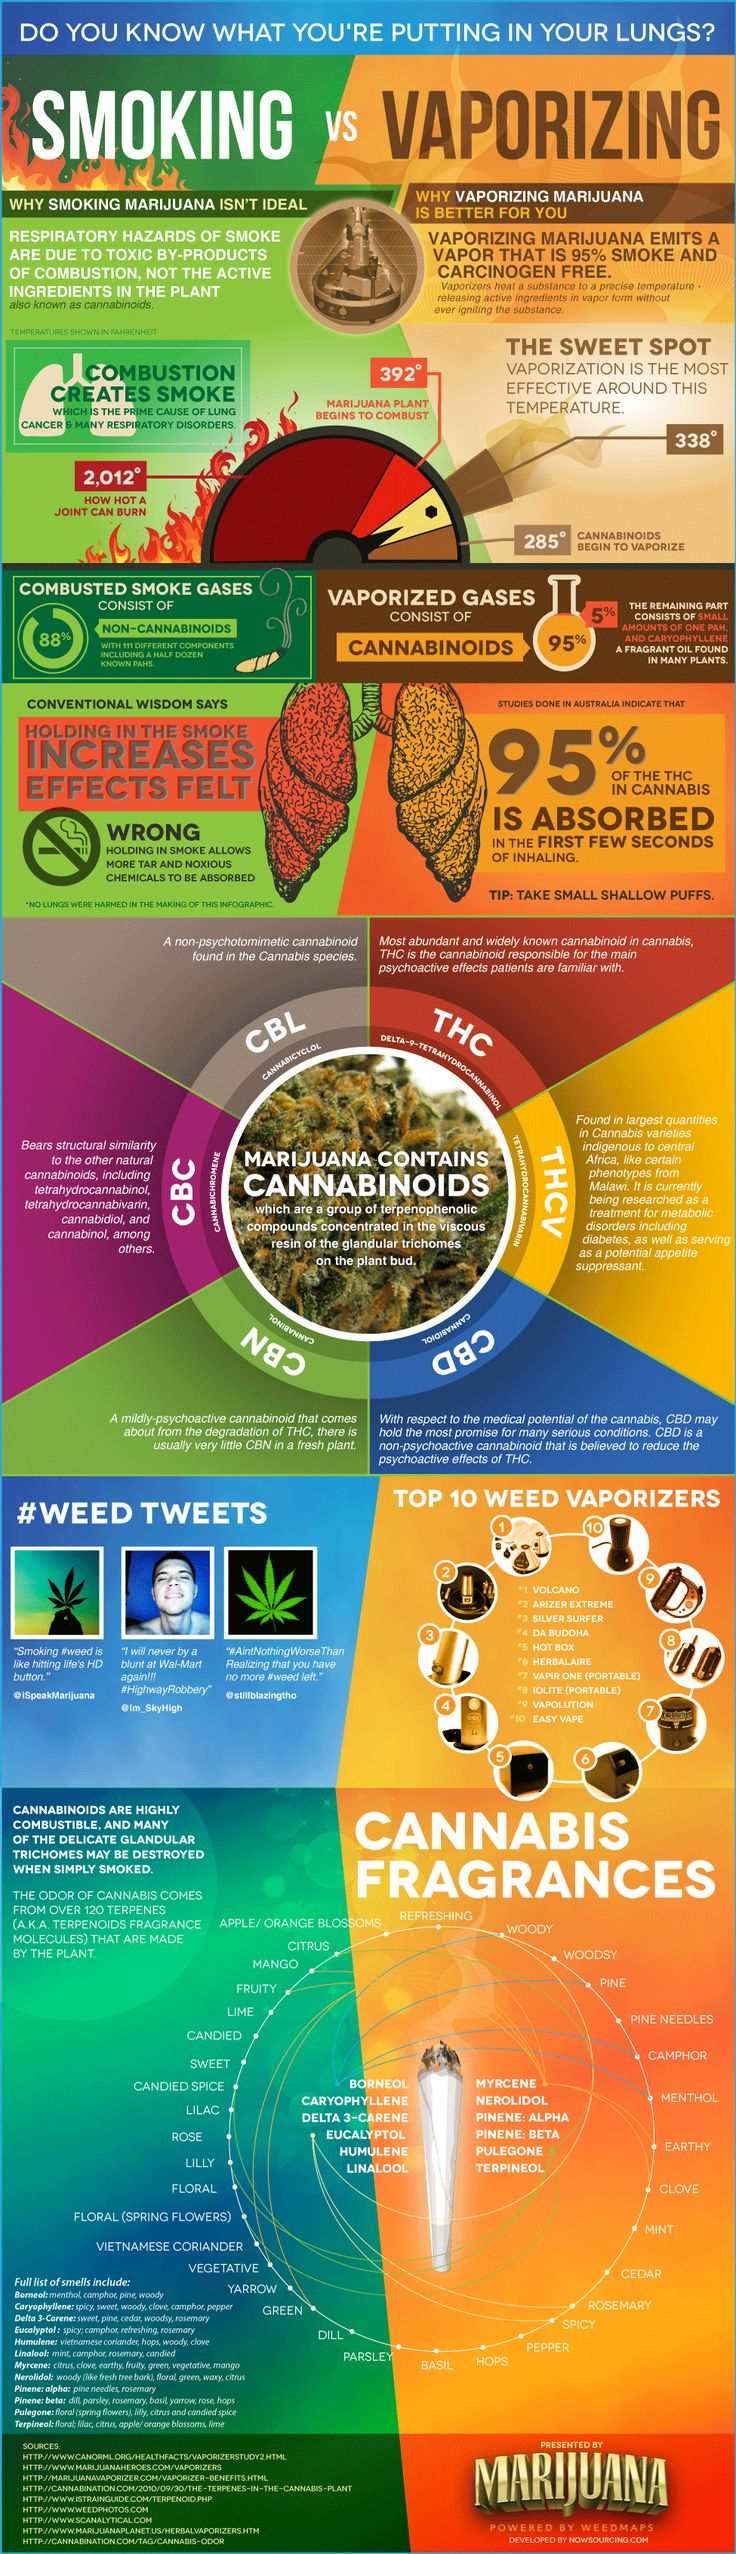 Today's infographic is here to inform the public on the benefits of smoking compared to vaping cannabis.